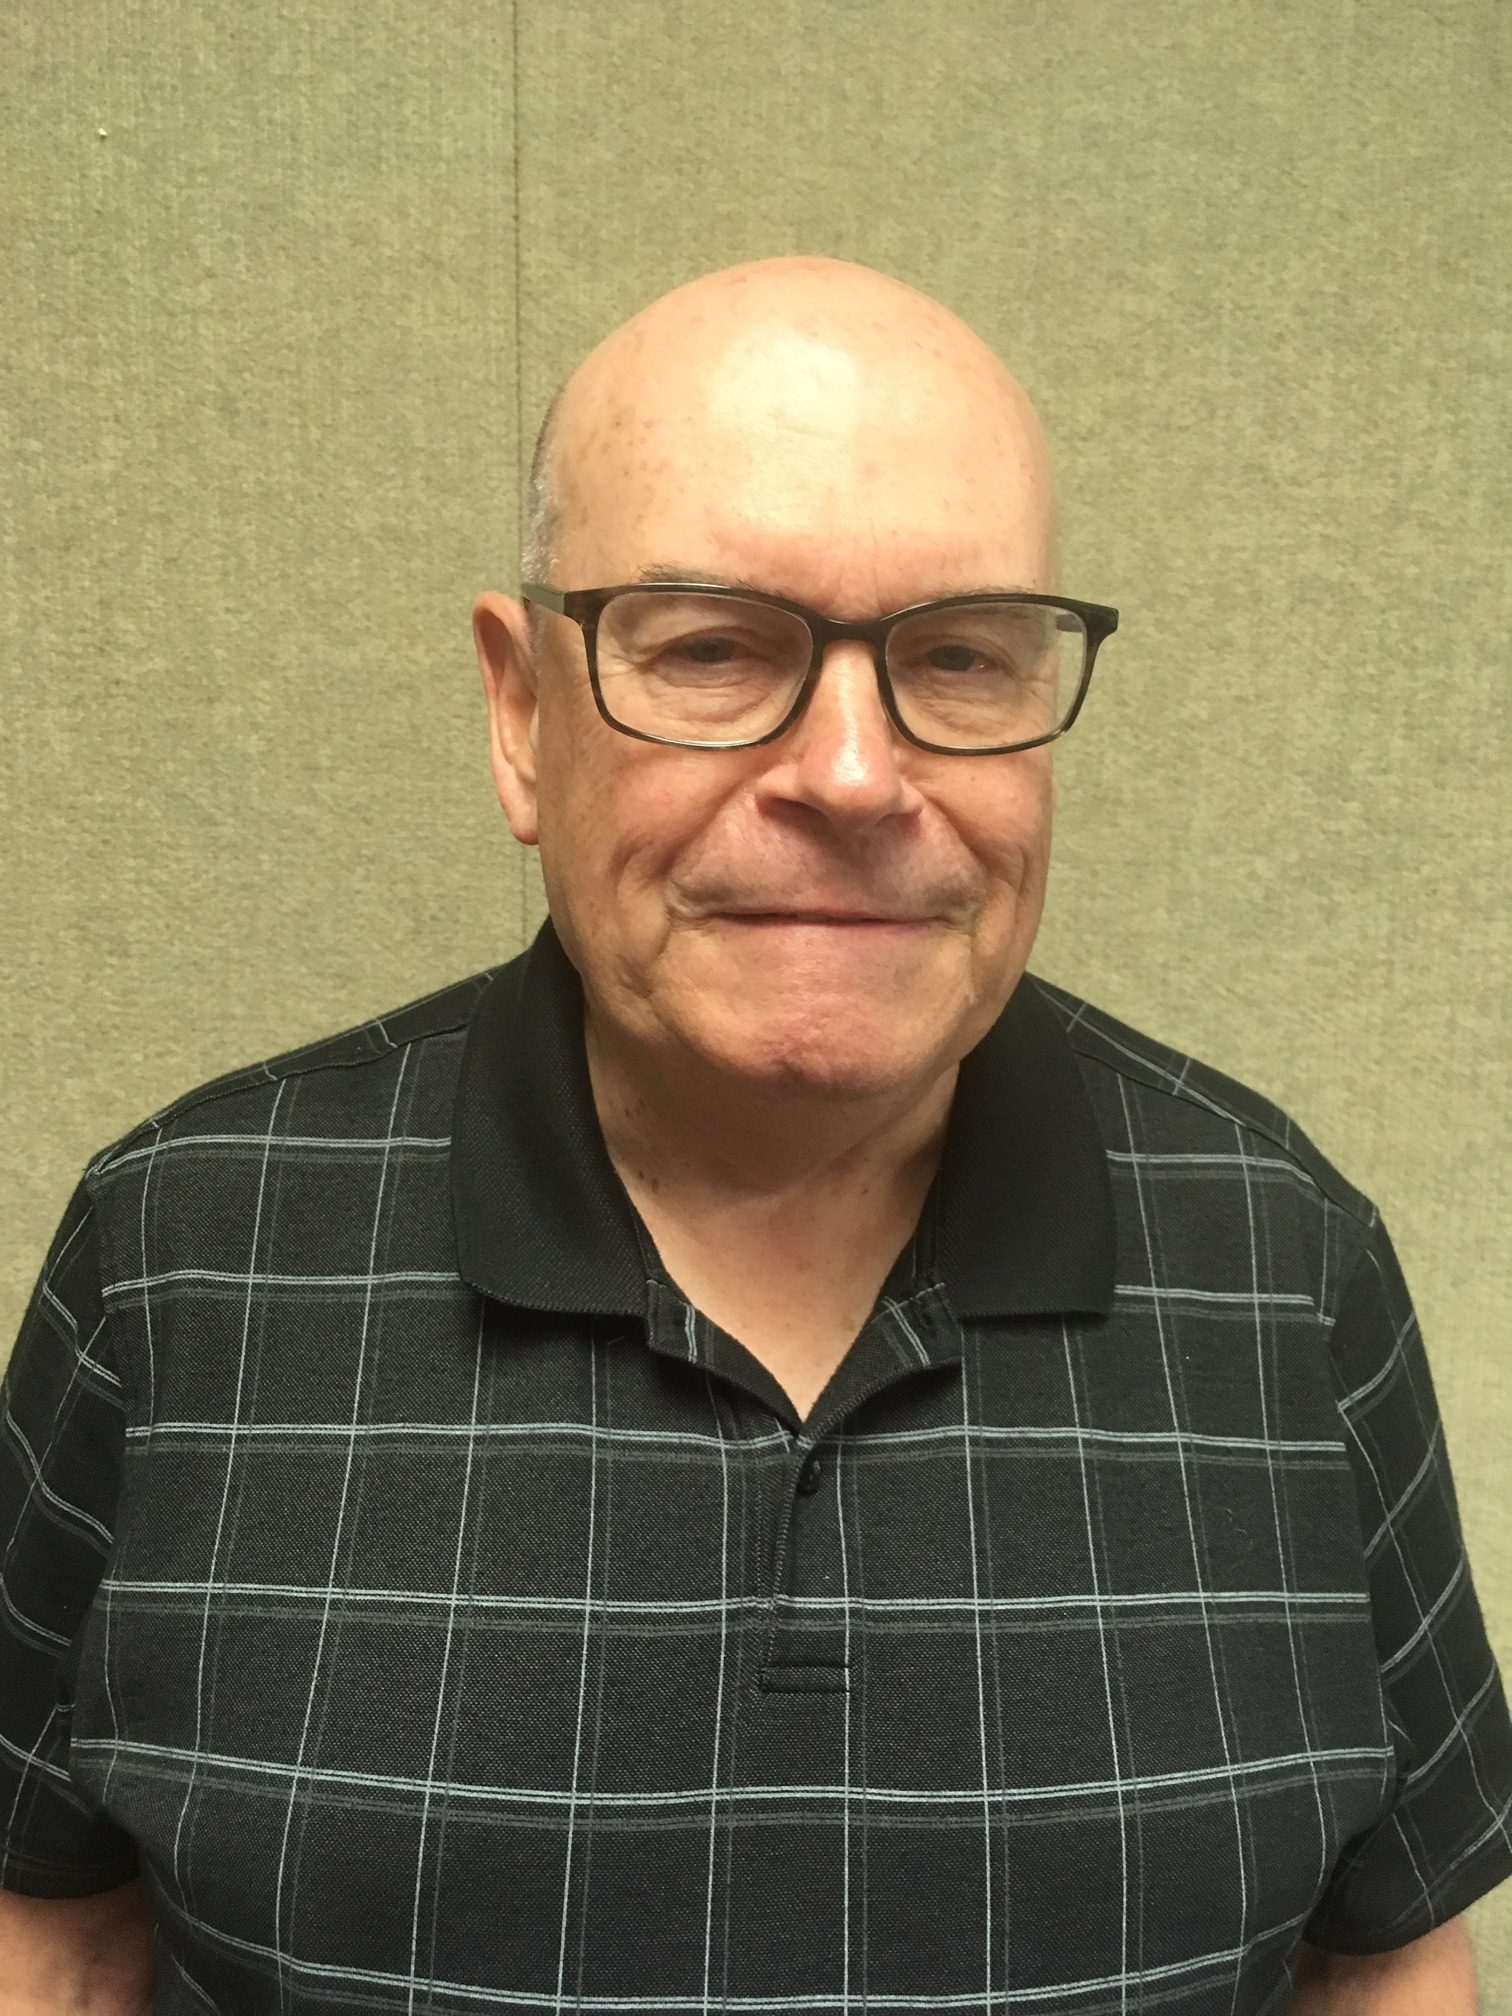 Rick Broyles, Business Manager